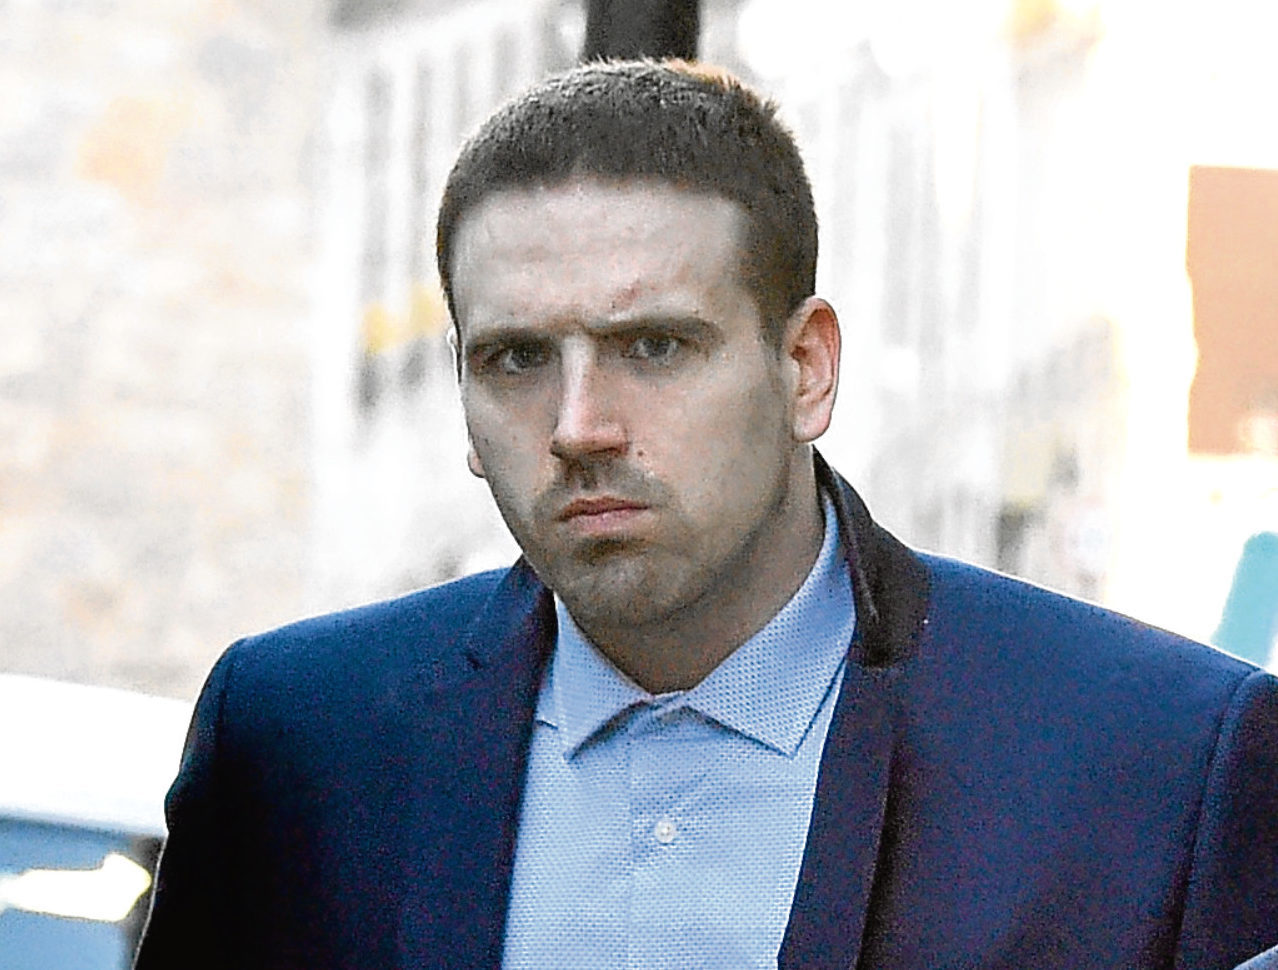 Darren Barnes, also known as Riley, was convicted of killing his best friend Robert Reid in an attack in October 2016